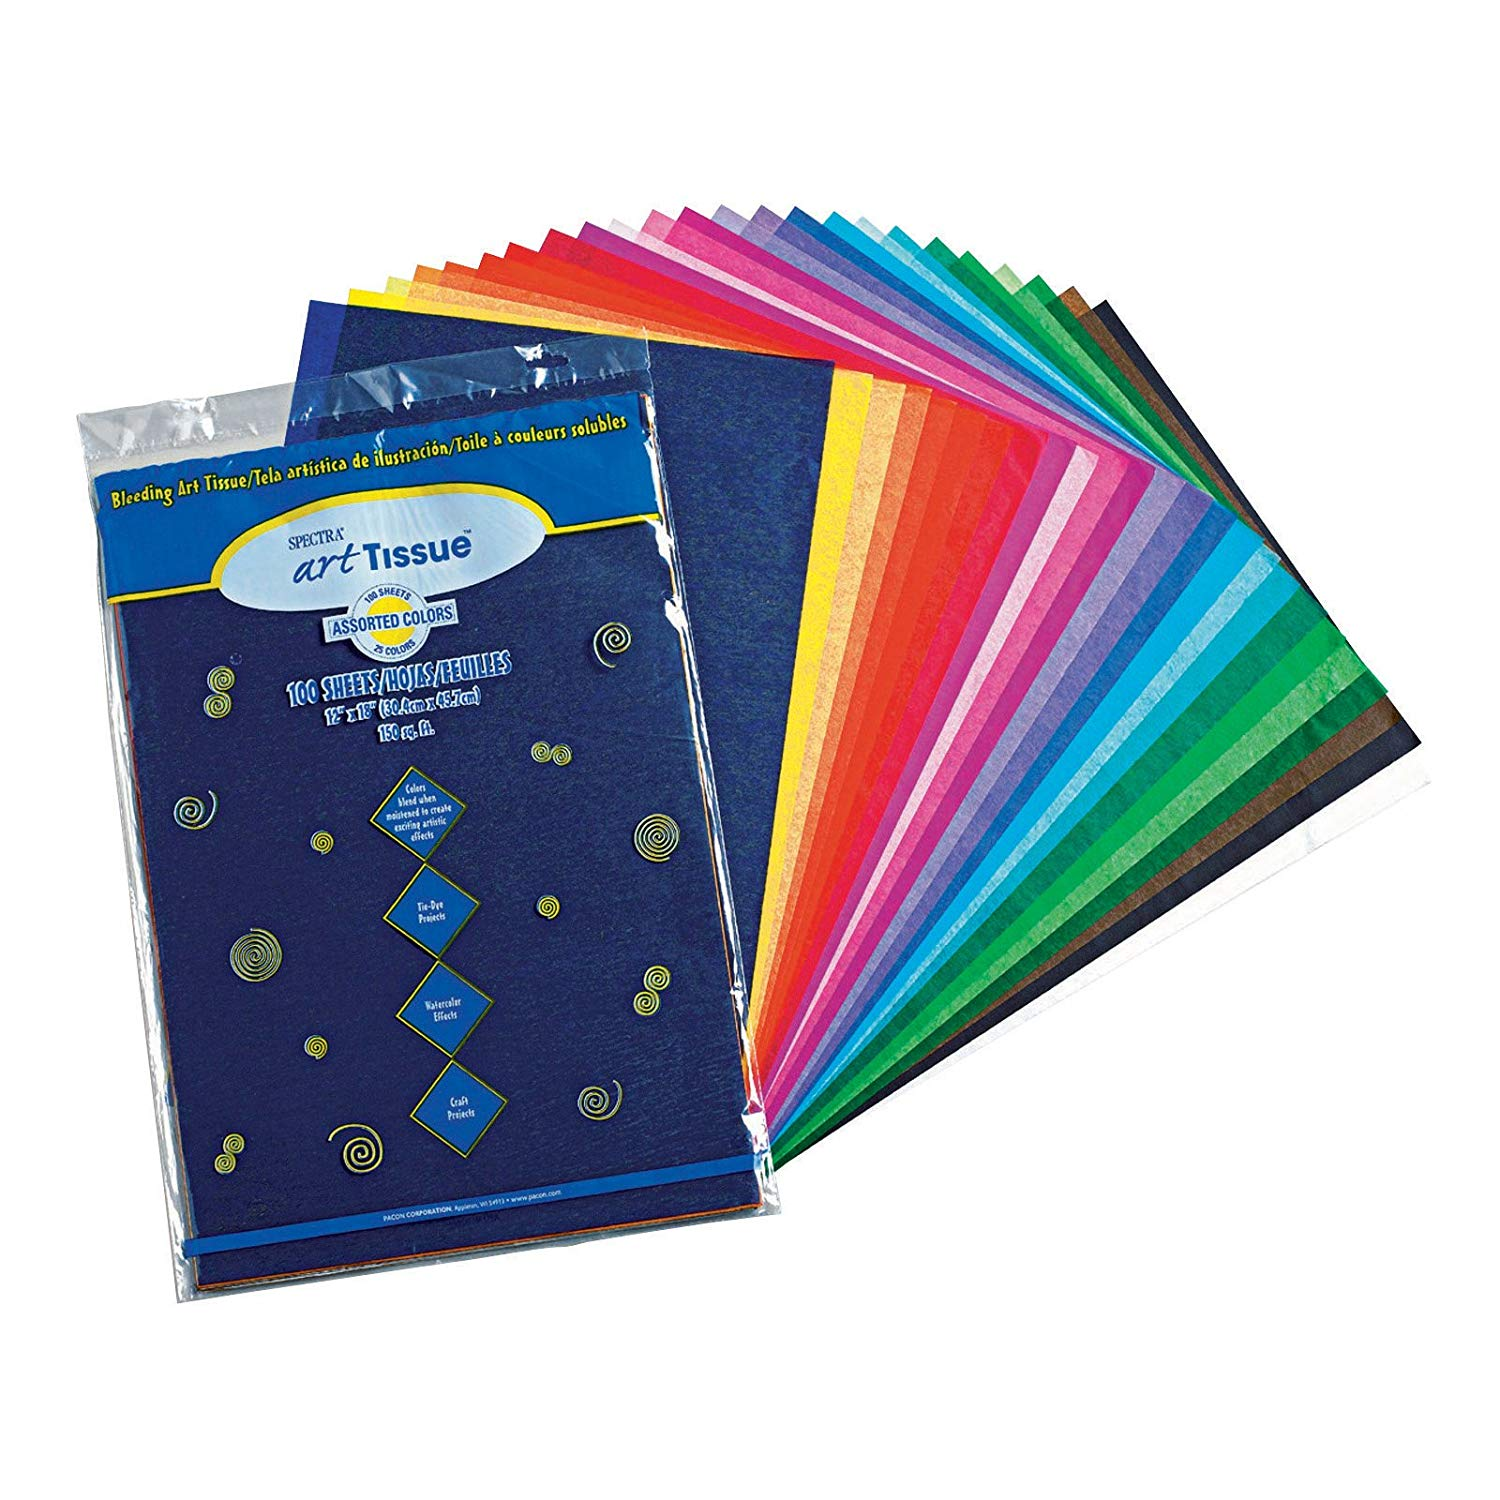 """Spectra(R) Assorted Color Tissue Pack, 12"""" x 18"""", 25 Colors, Pack Of 100 Sheets (59530), Durable tissue paper that won't tear when folded.., By Pacon,USA"""